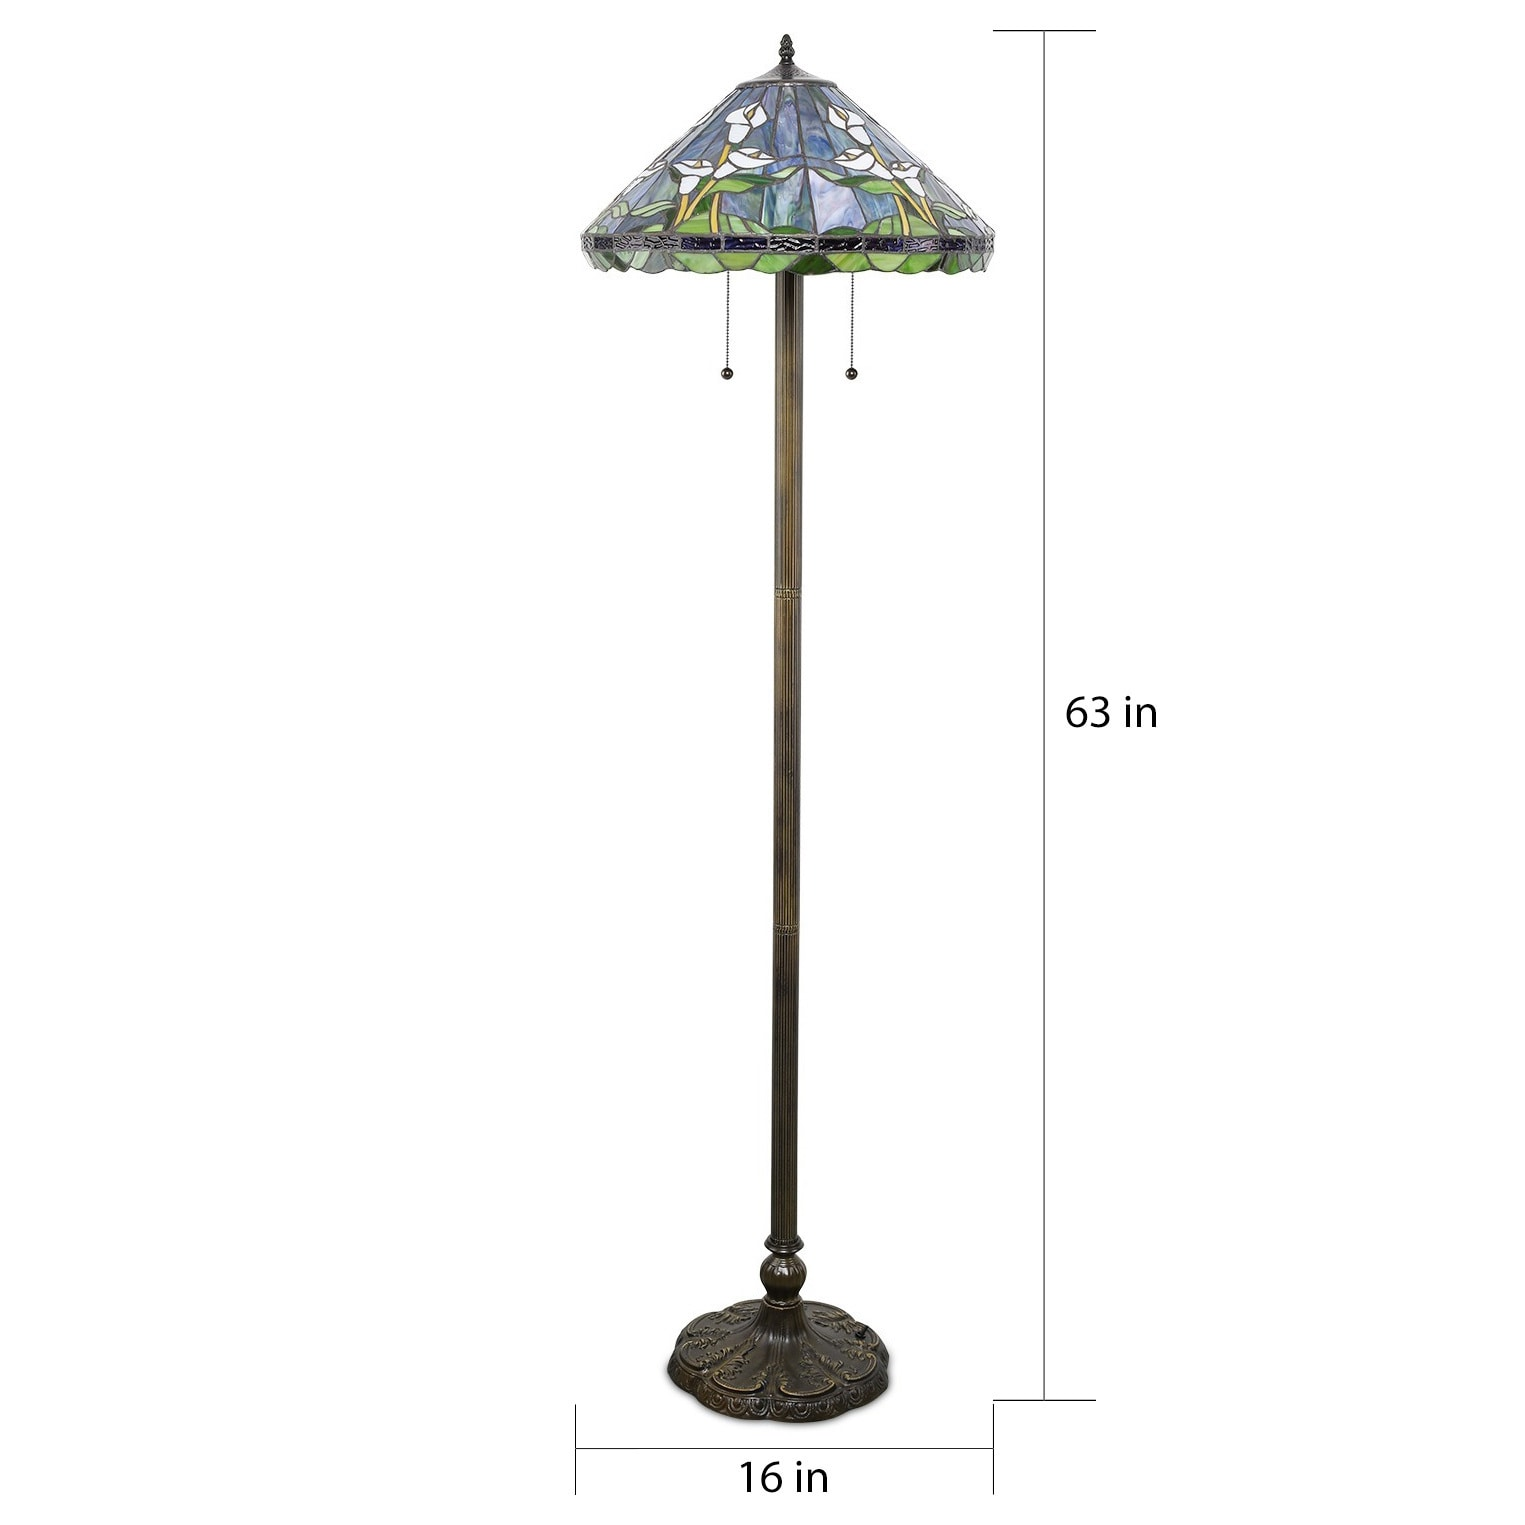 tiffany lamp the home cairo item stained brick decor with accessories floor glass style product and shade lamps